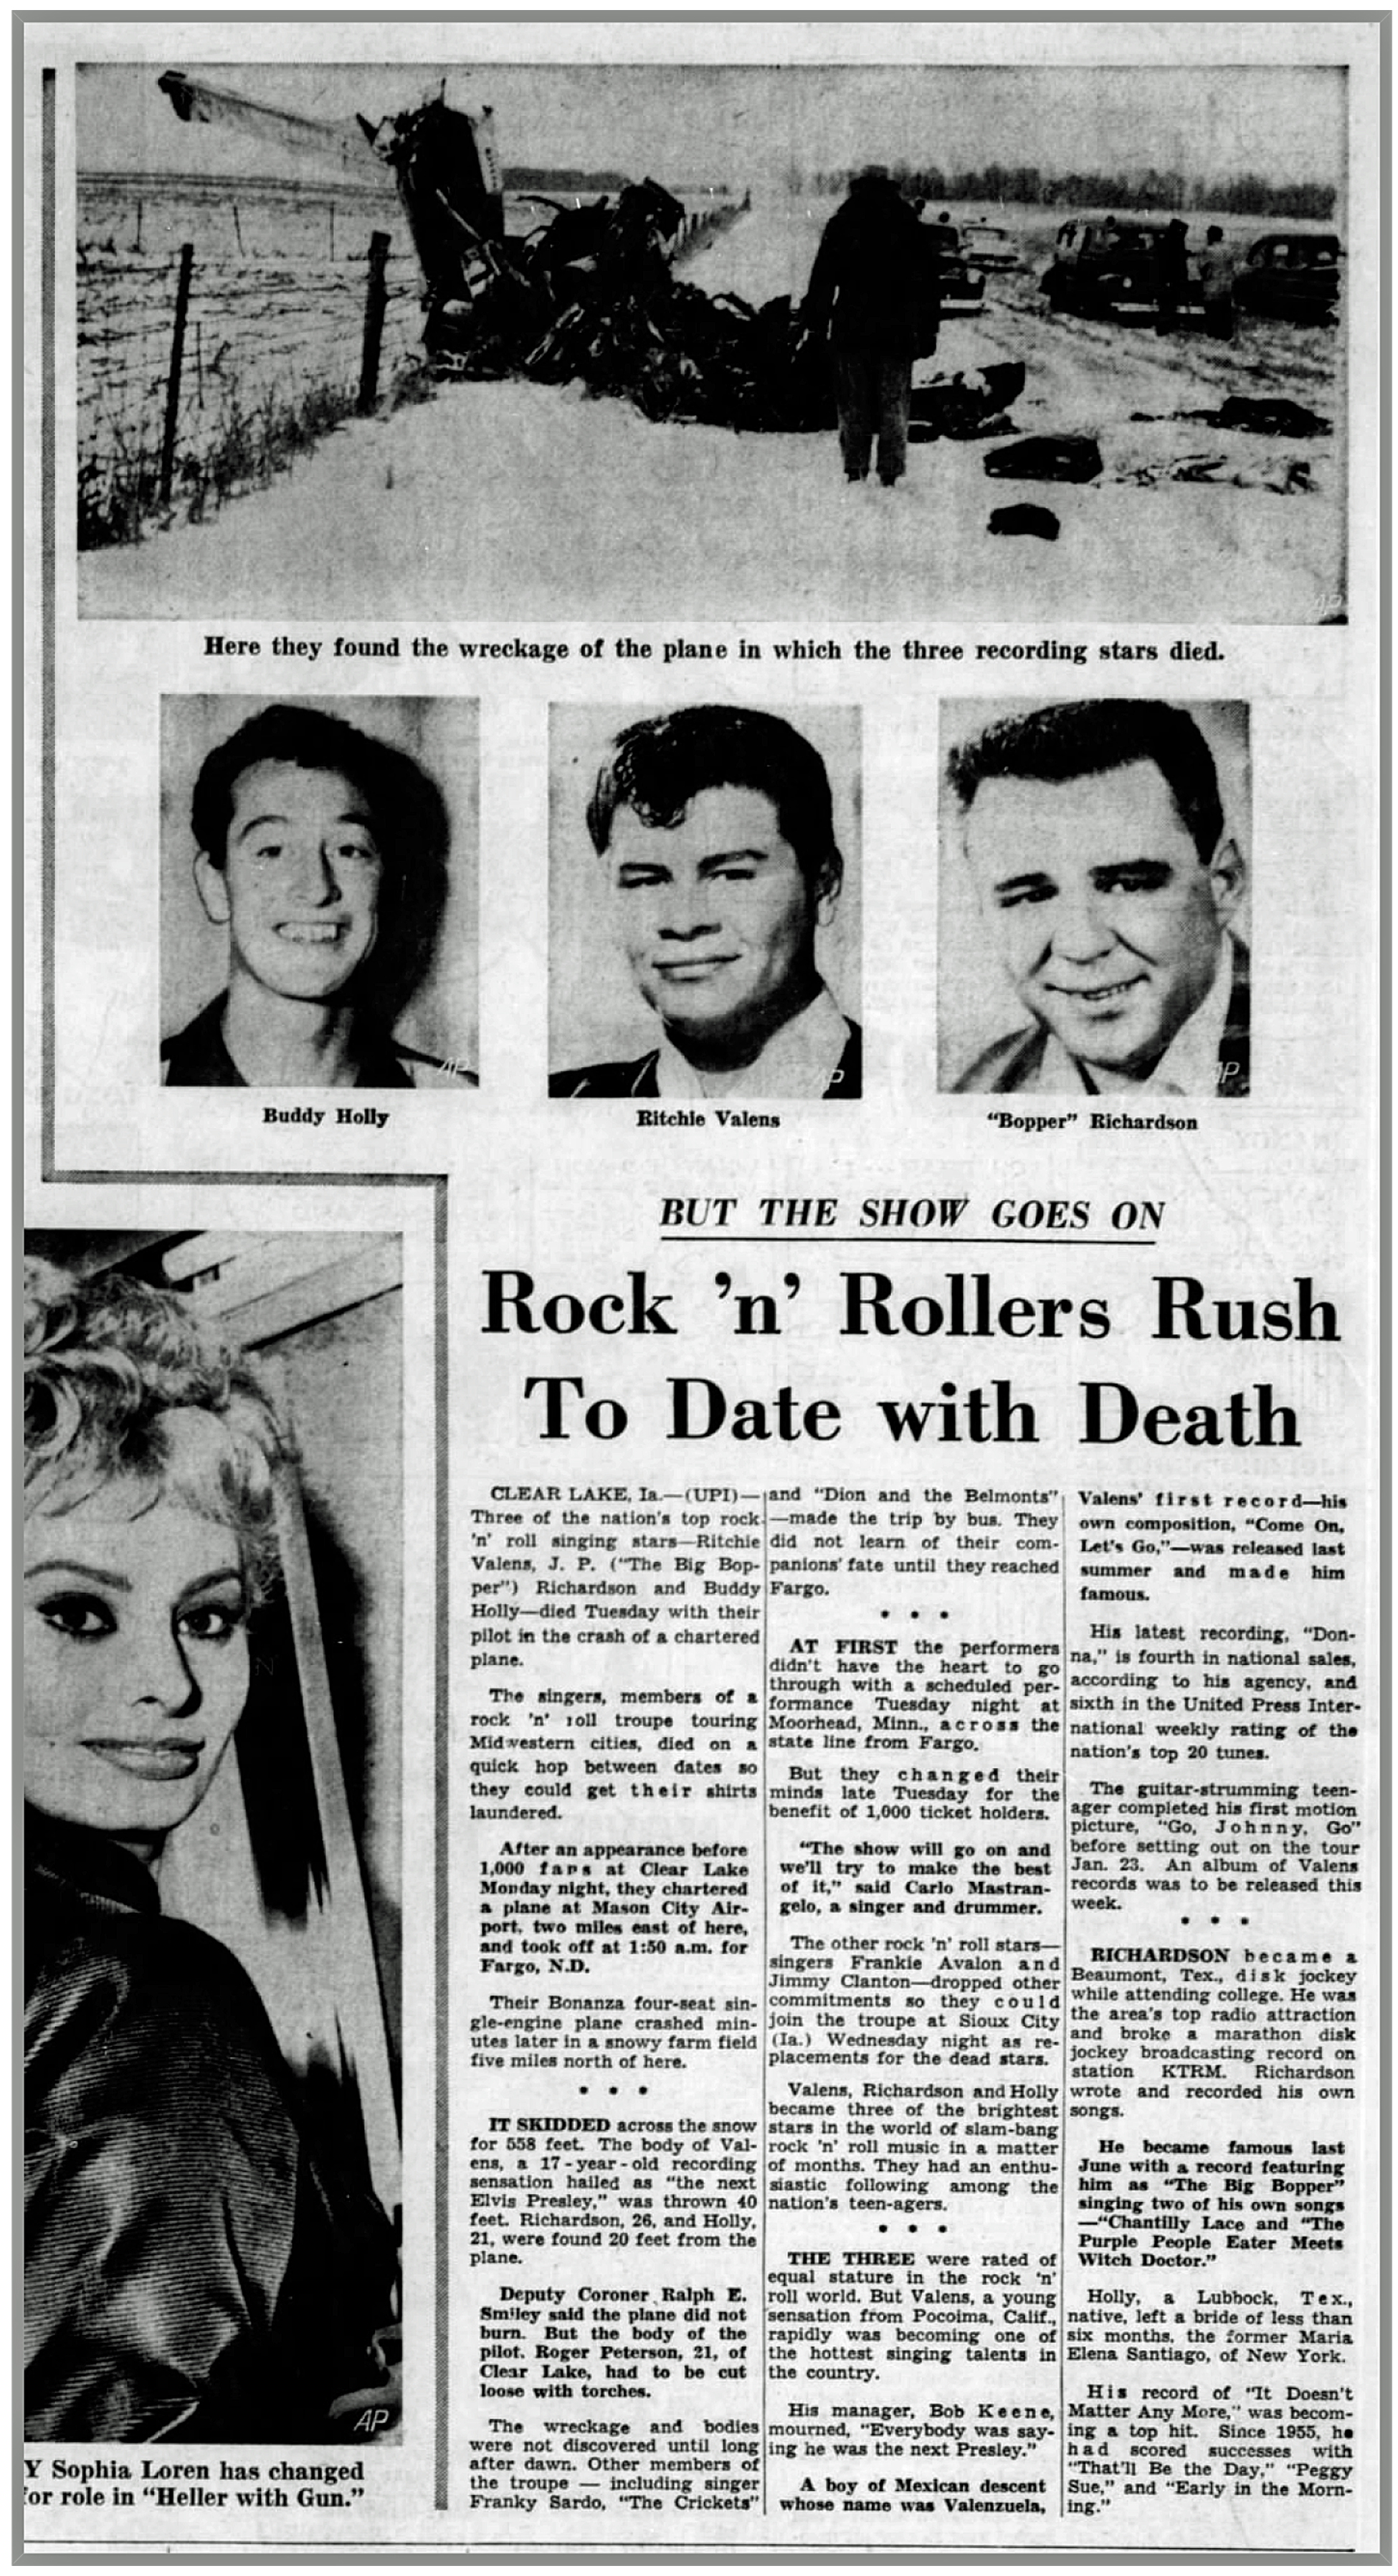 DETROIT FREE PRESS February 4, 1959 (Click on image 2x for largest detailed view).